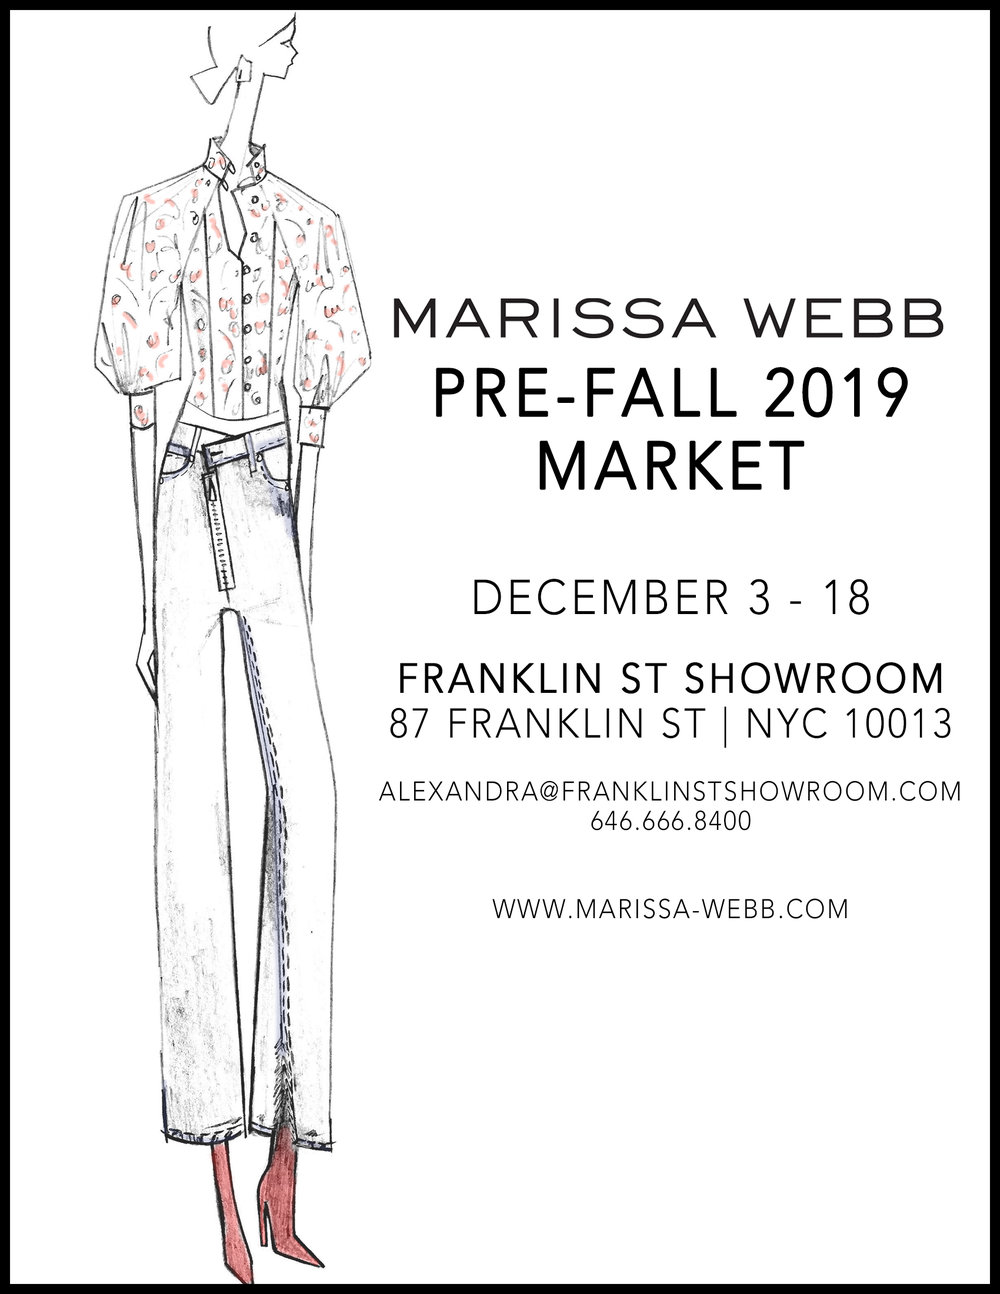 PF19 Showroom Invite MARISSA WEBB.jpg